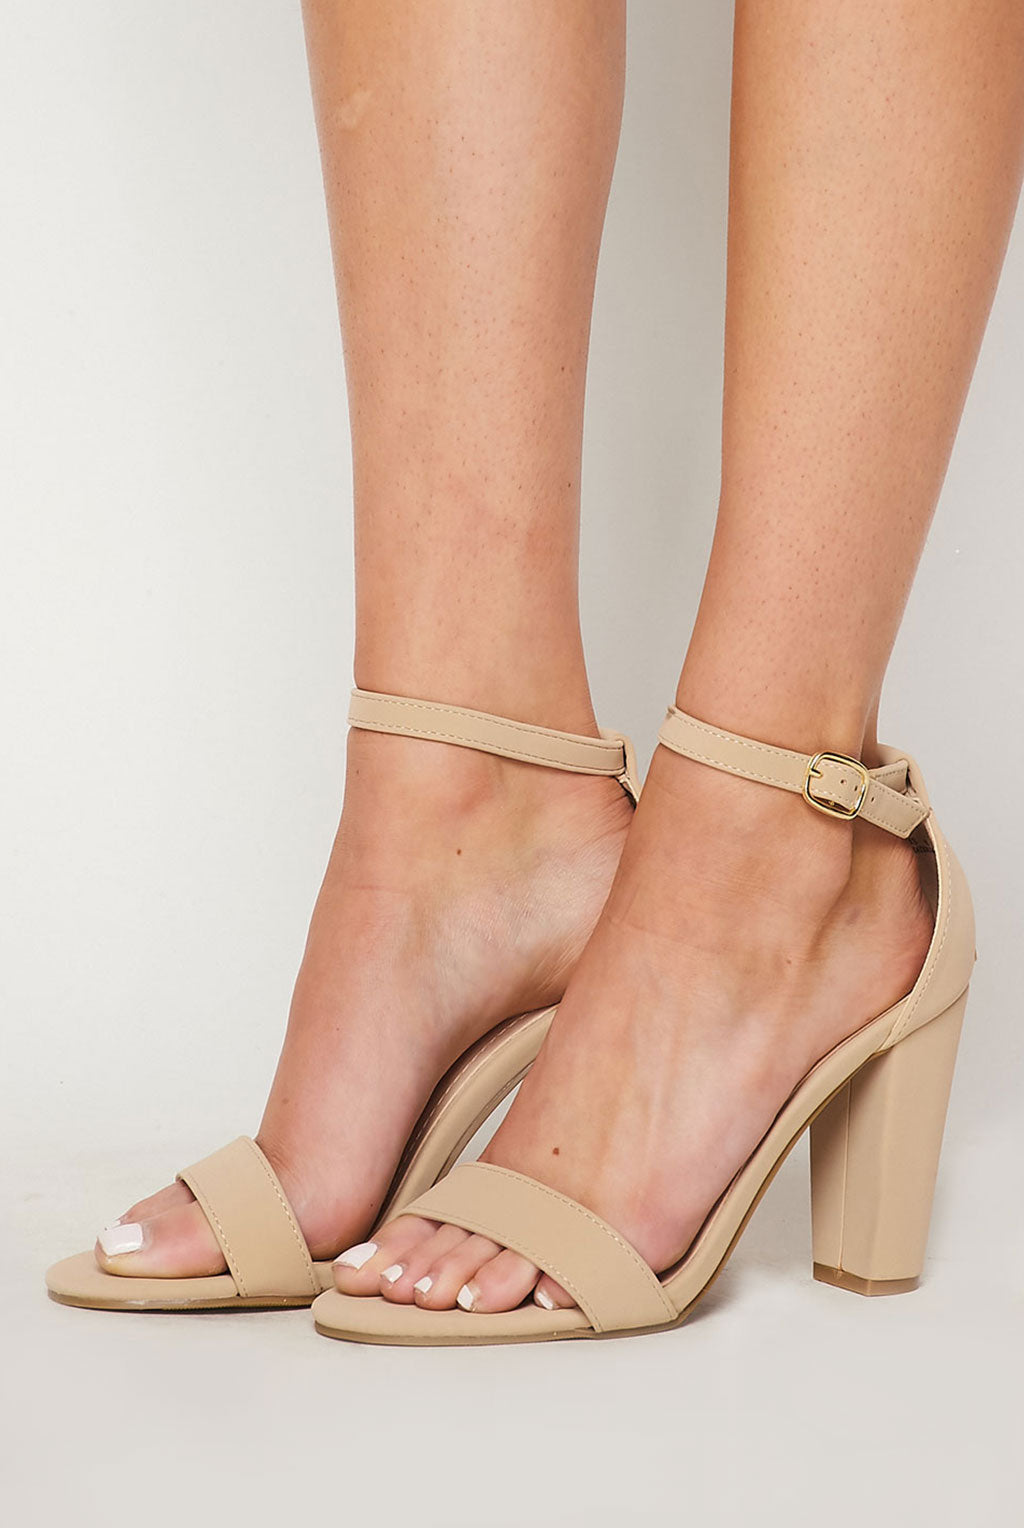 Teeze Me | Single Band Ankle Strap Chunky Heel | Nude Nubuc